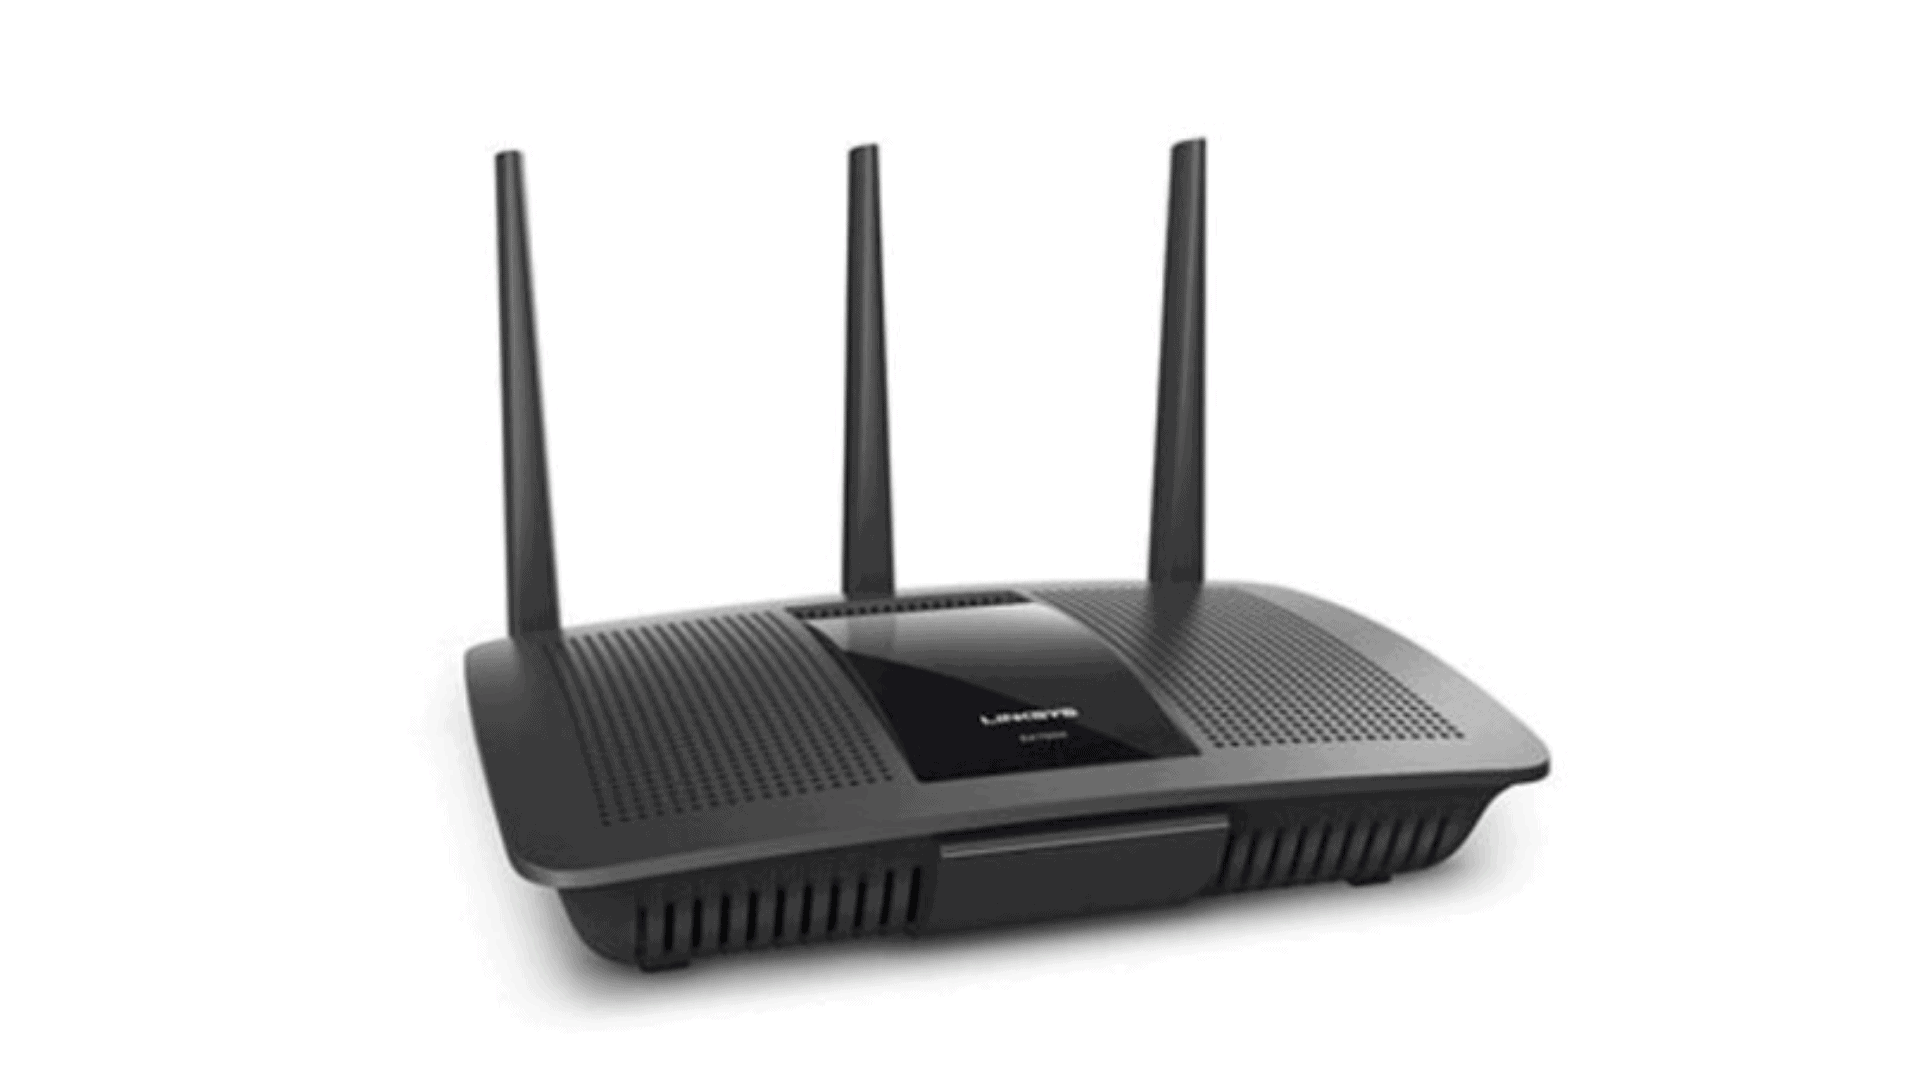 Linksys EA7500 WiFi Router with three antennas